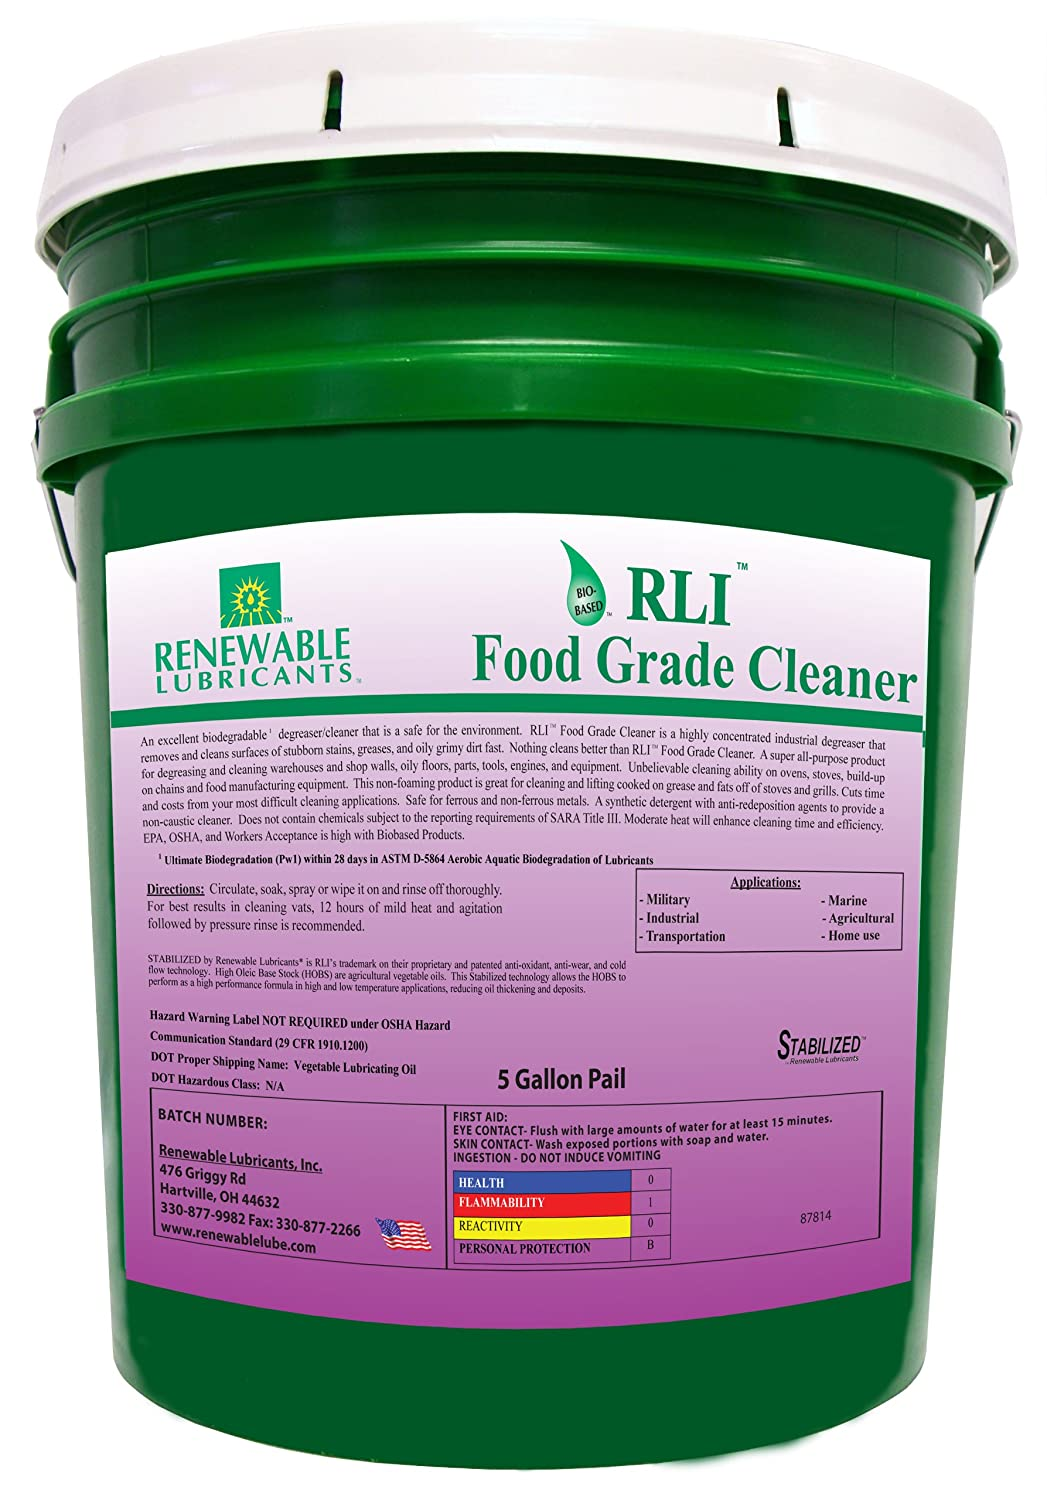 Renewable Lubricants - 87814 Food Grade Cleaner, 5 Gallon Pail